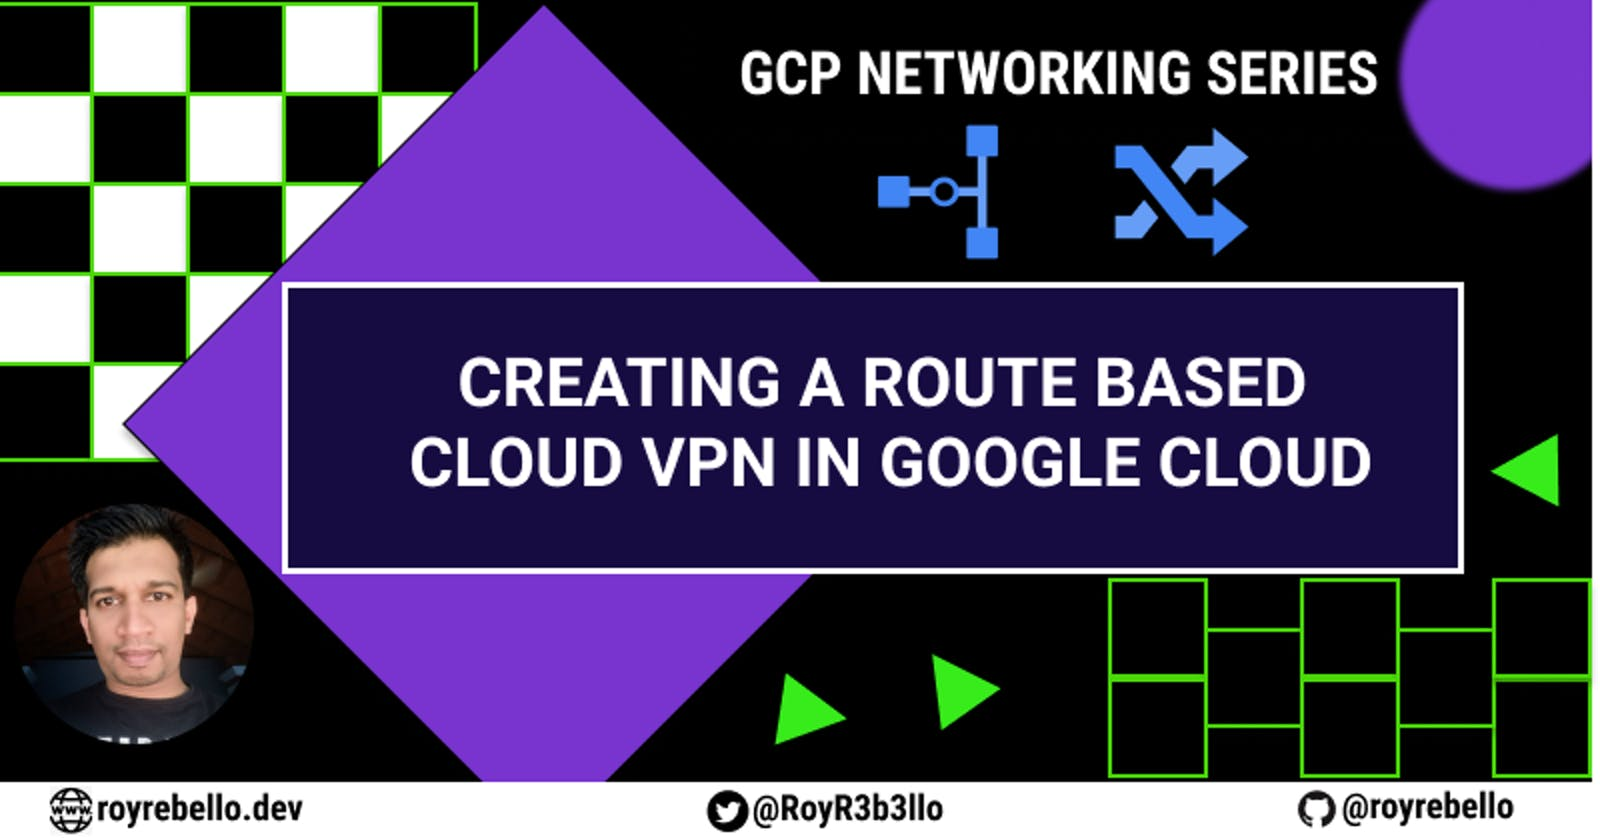 Creating a route based Cloud VPN in GCP